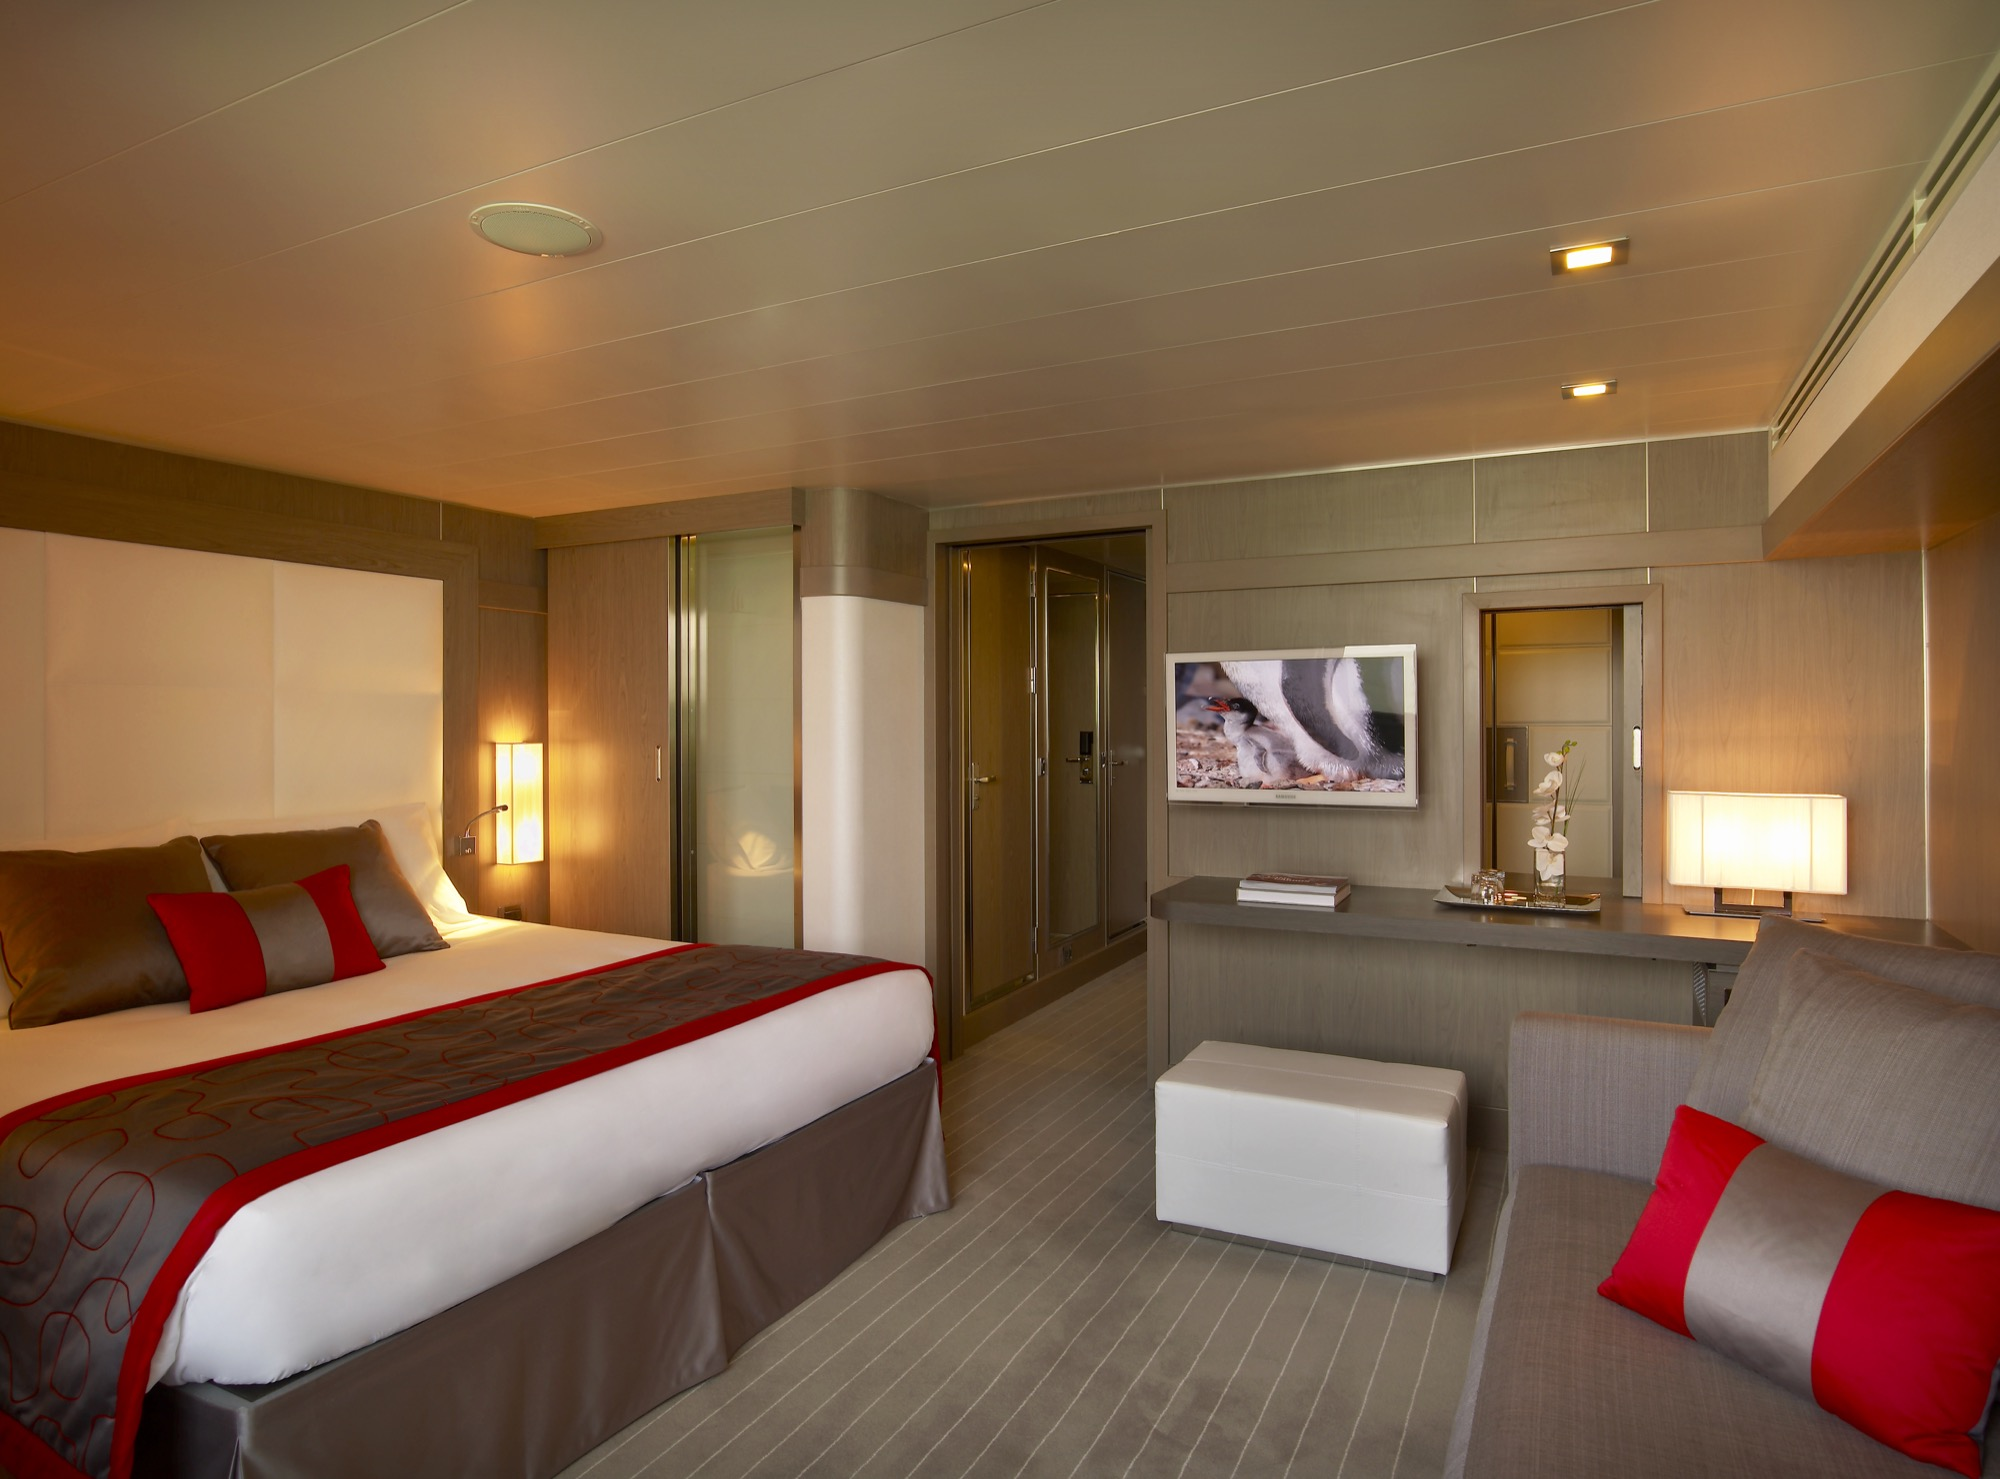 Ponant Le Boreal Accommodation Deluxe Stateroom 1.JPEG